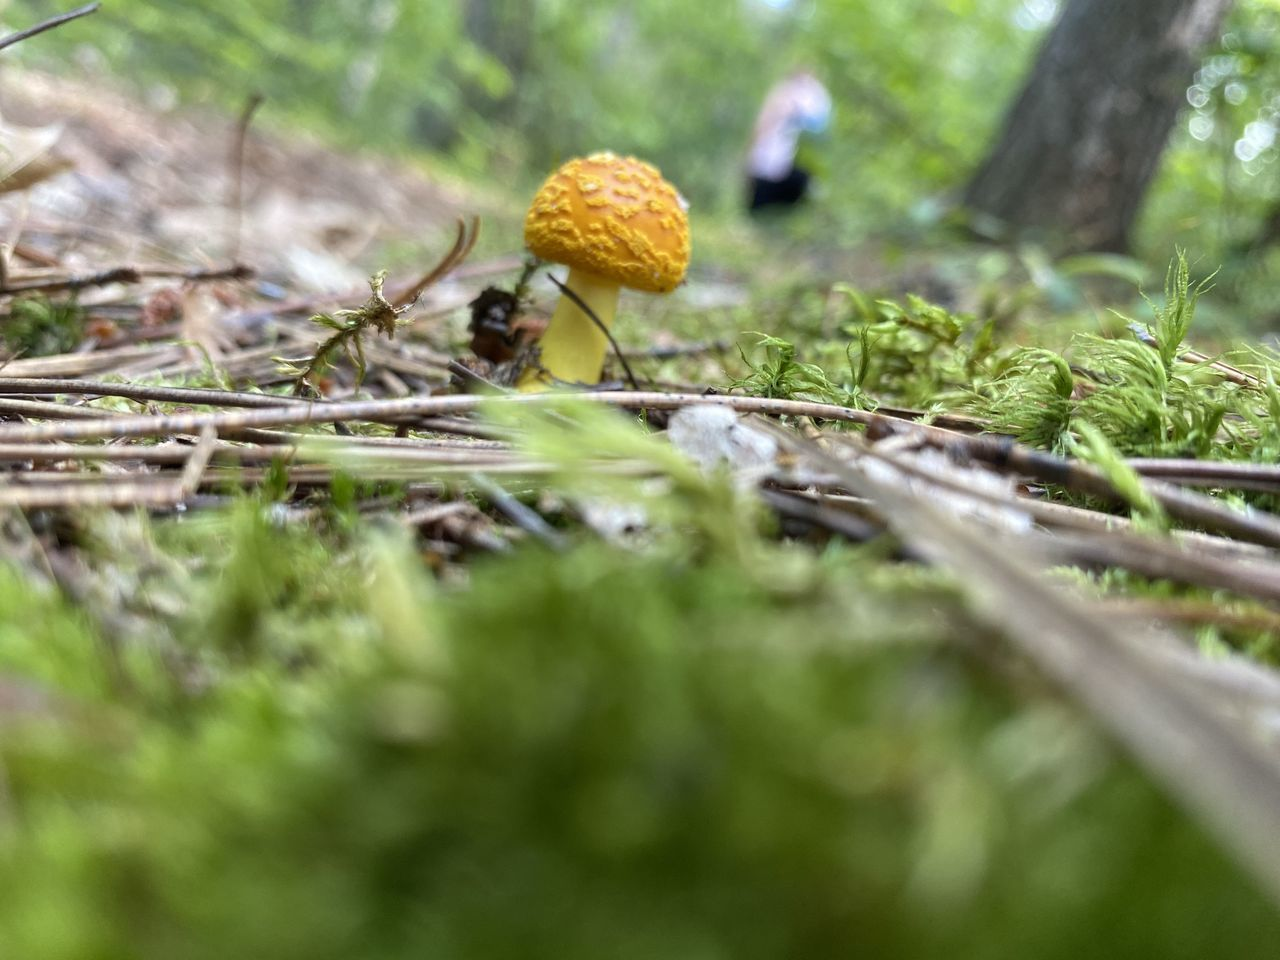 CLOSE-UP OF MUSHROOMS GROWING ON LAND IN FOREST